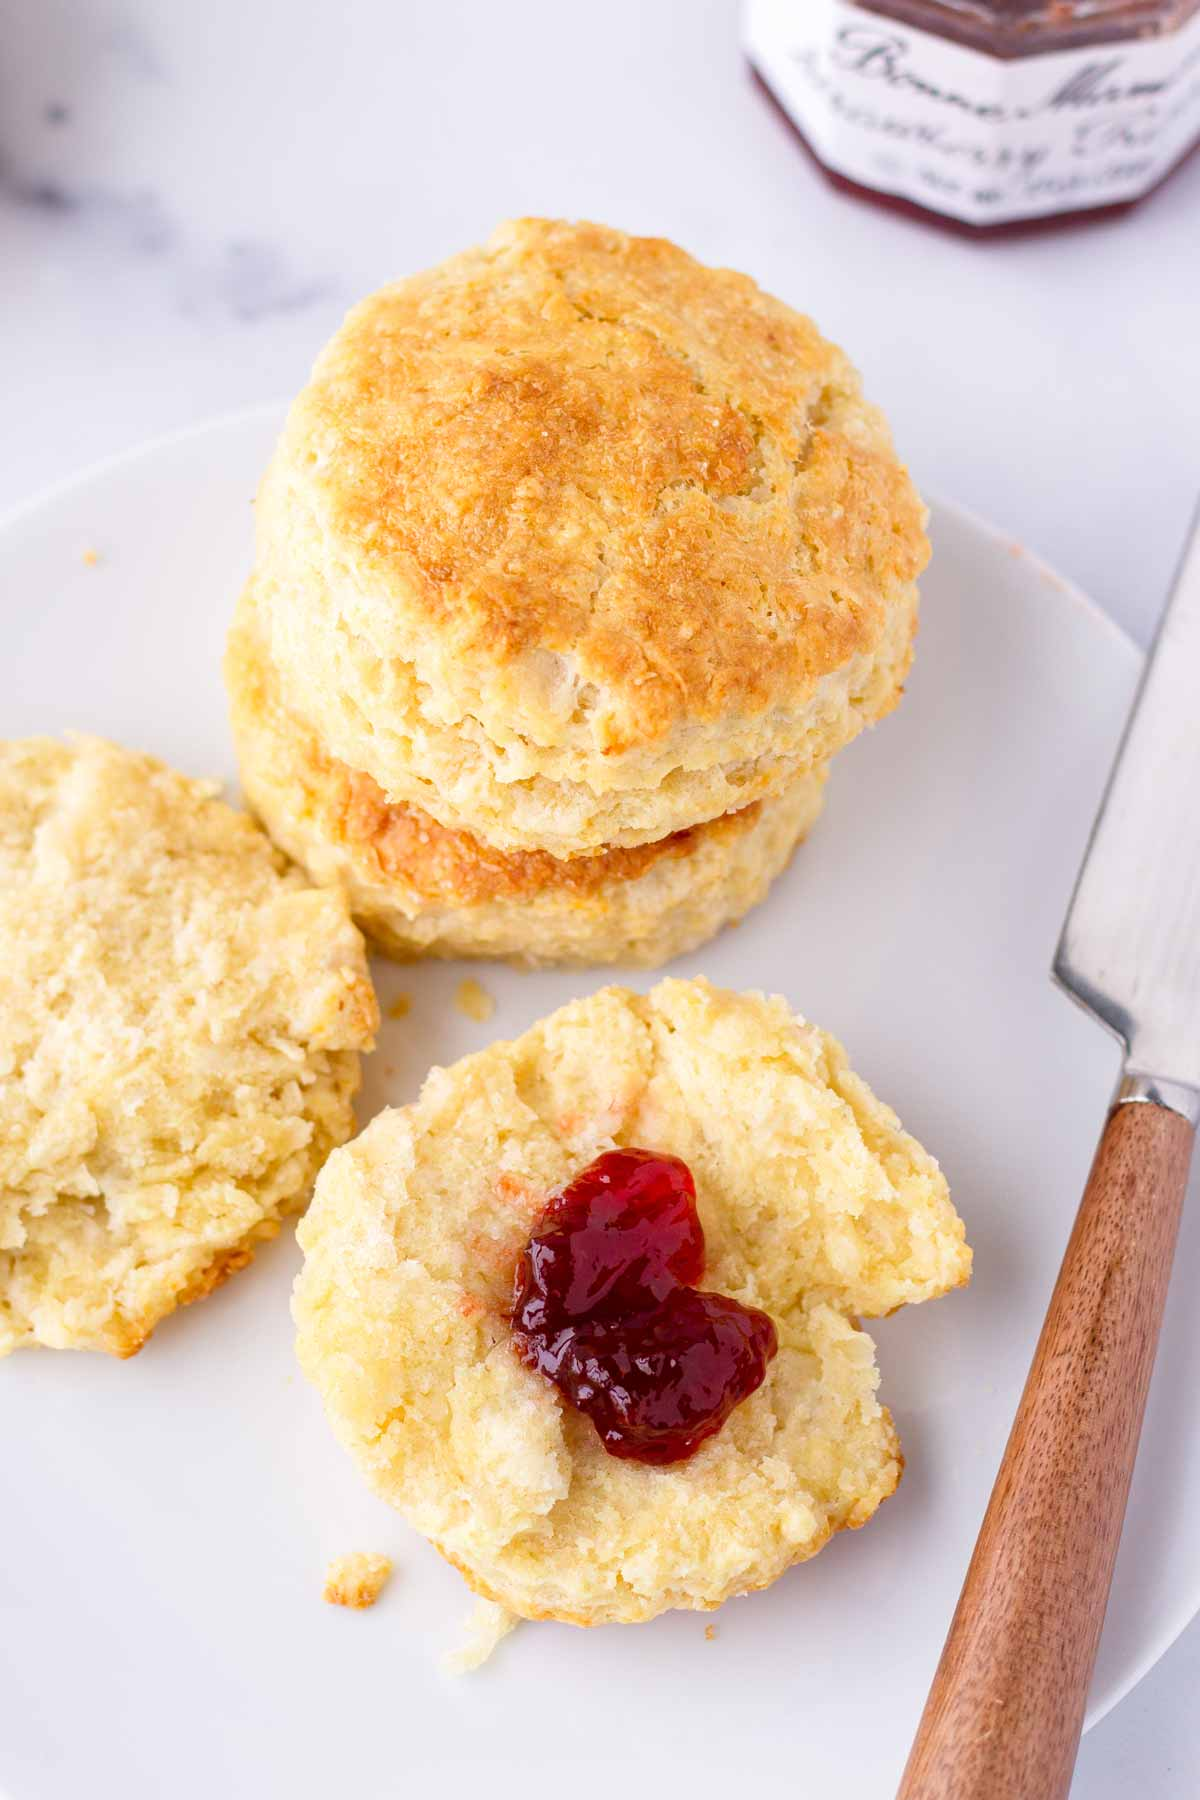 buttery biscuits with jam on a plate and a knife